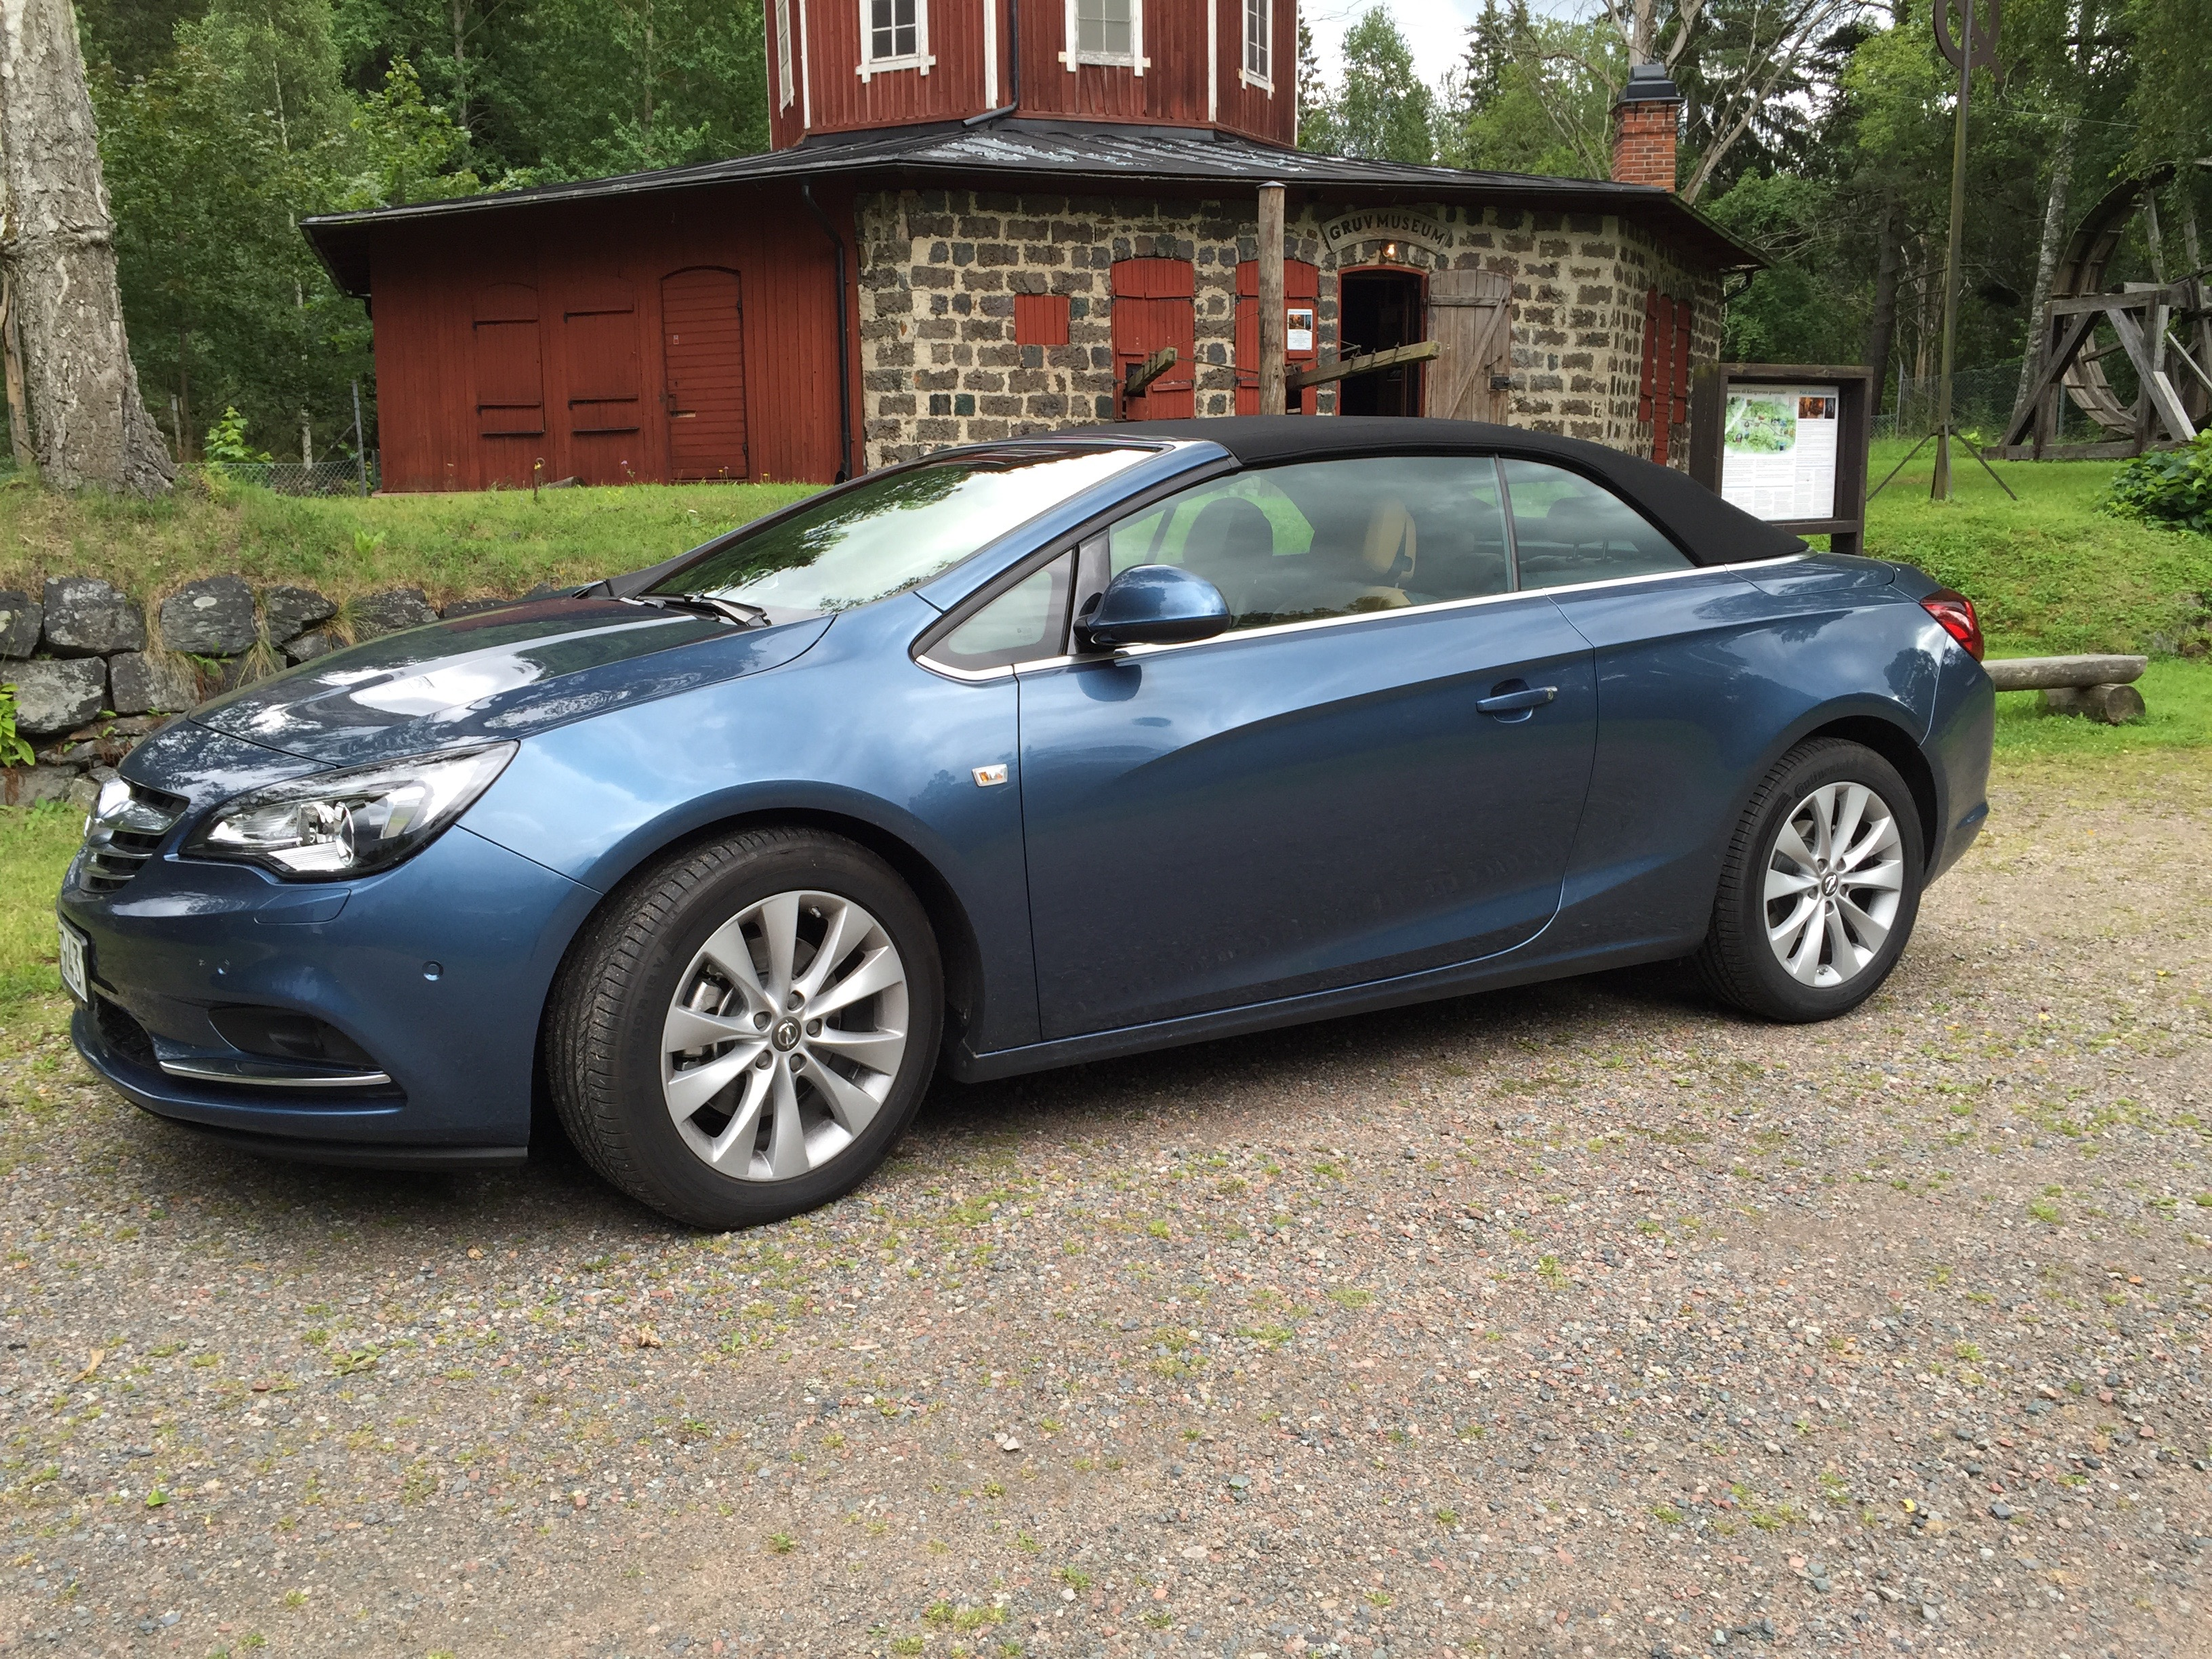 Wallenrud testar: Opel Cascada cab (video)